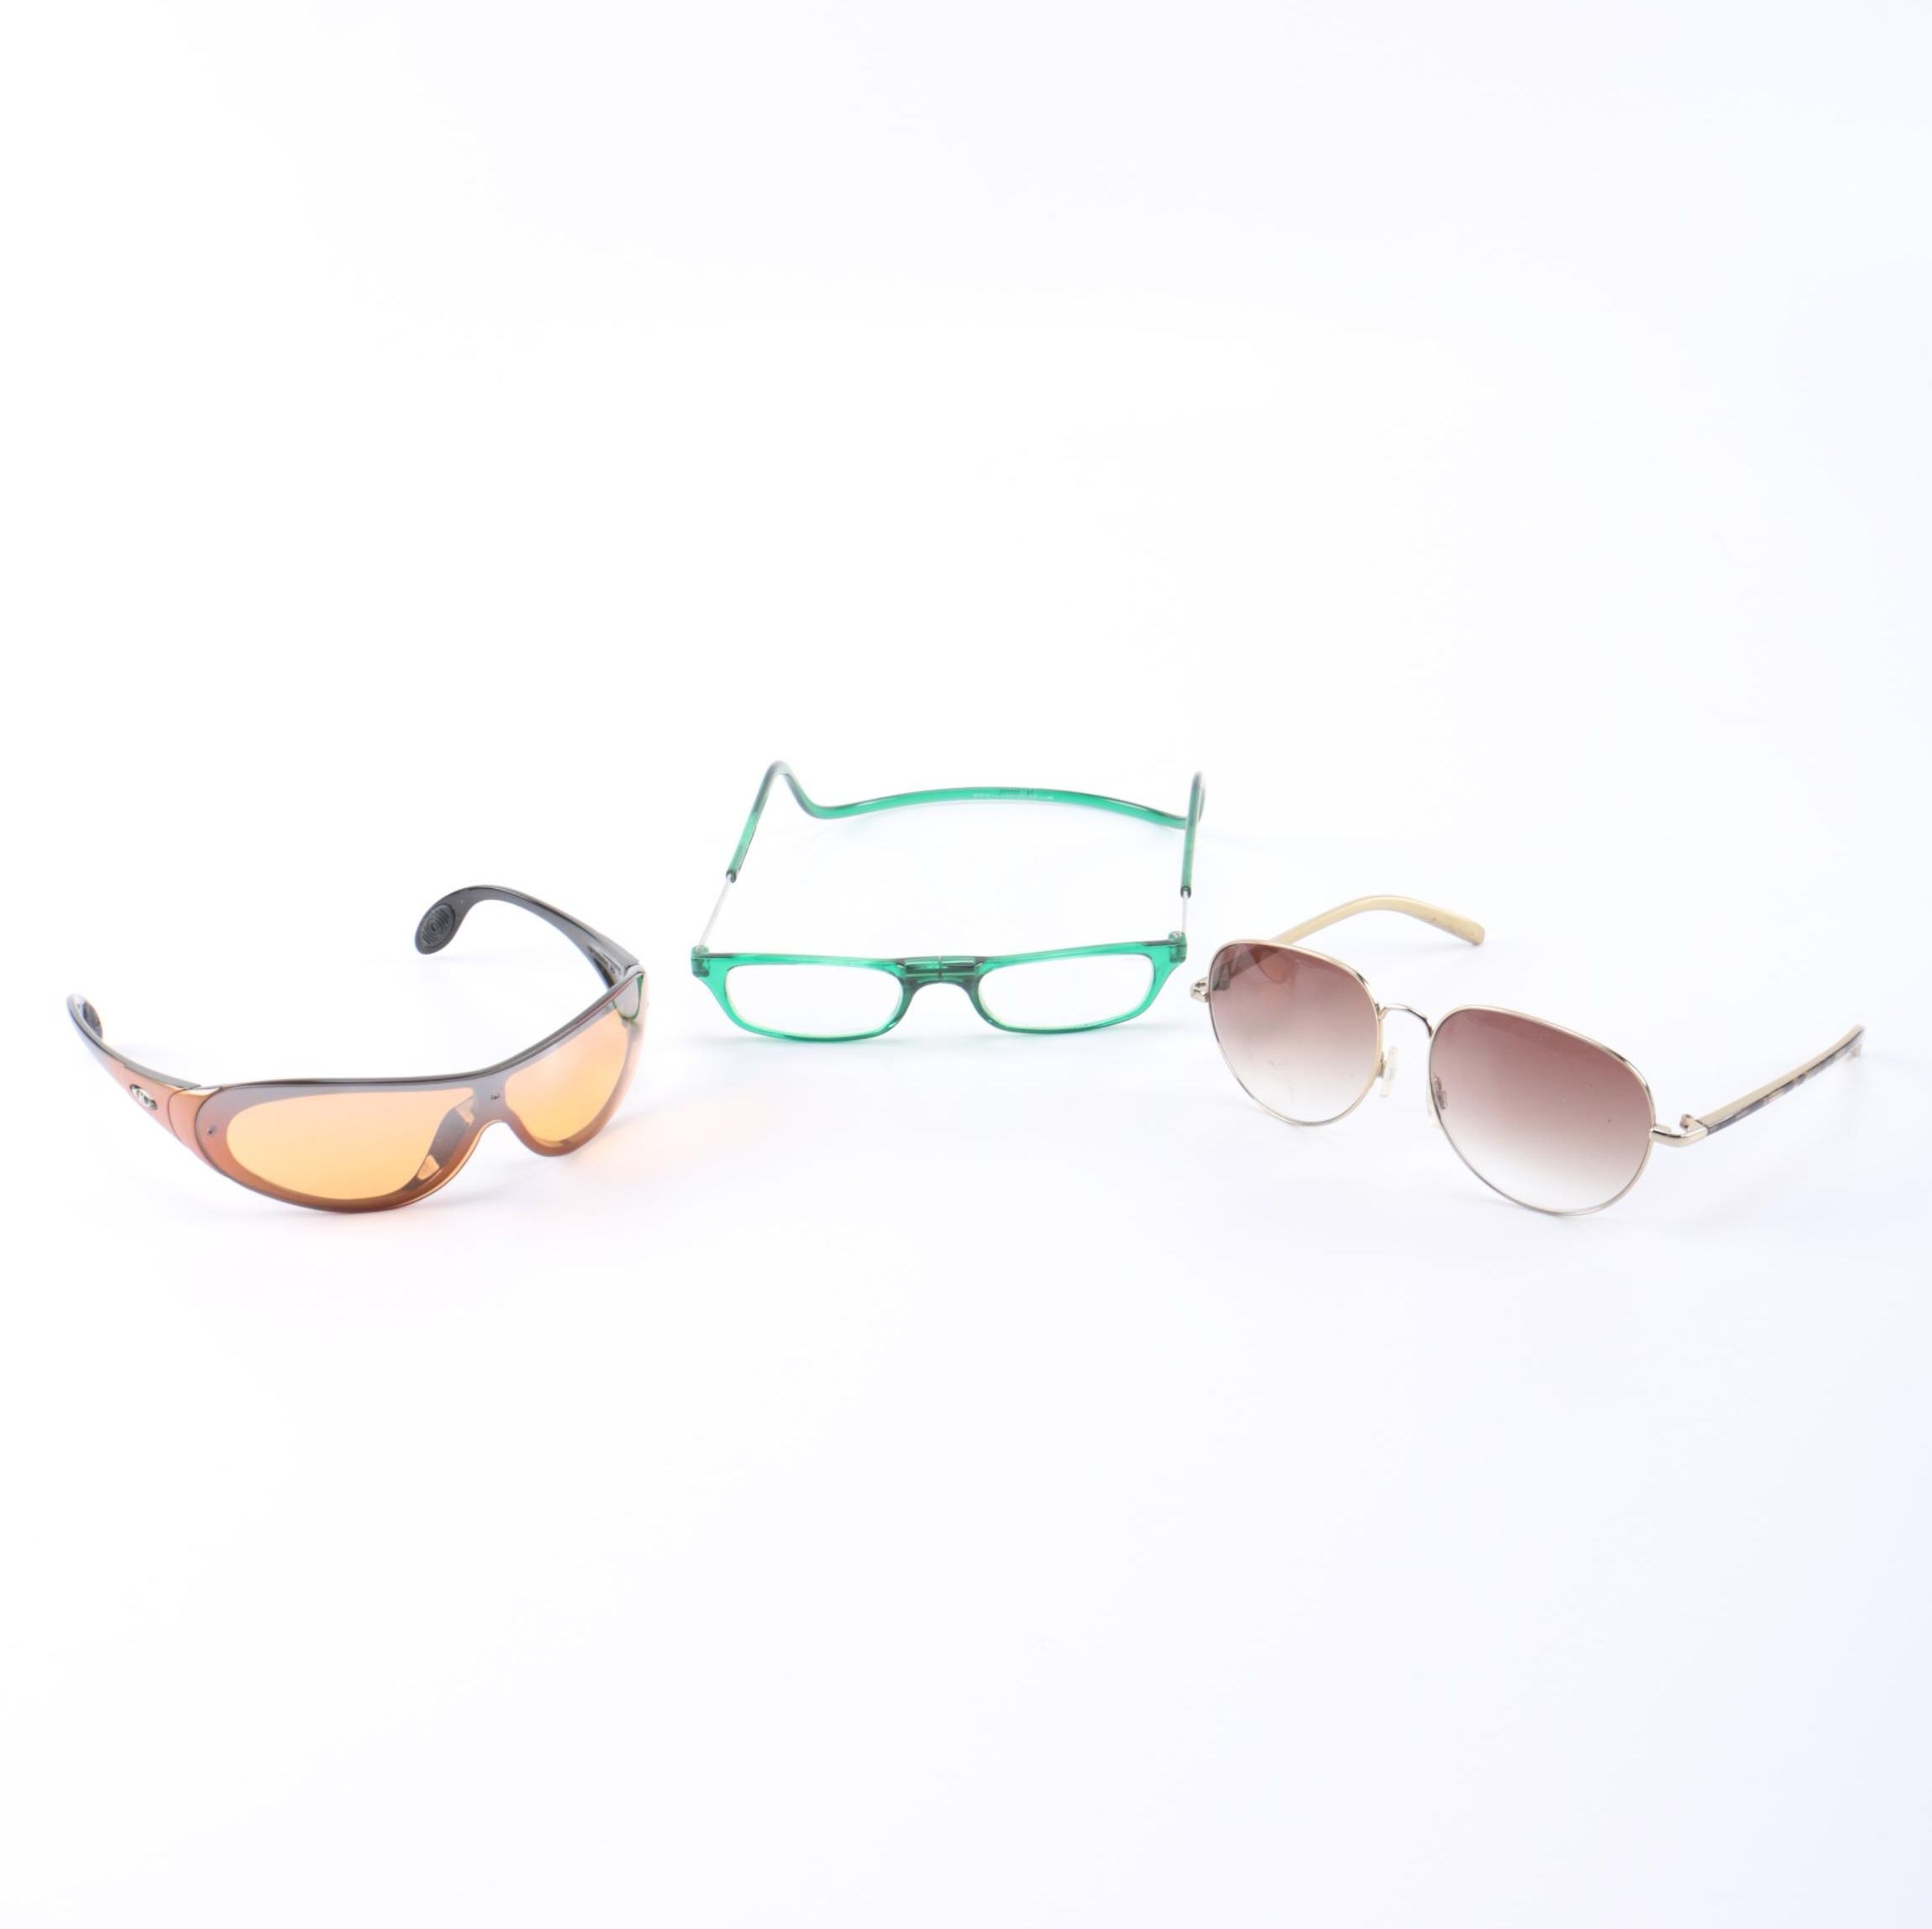 Fashion Sunglasses and Magnetic Reading Glasses